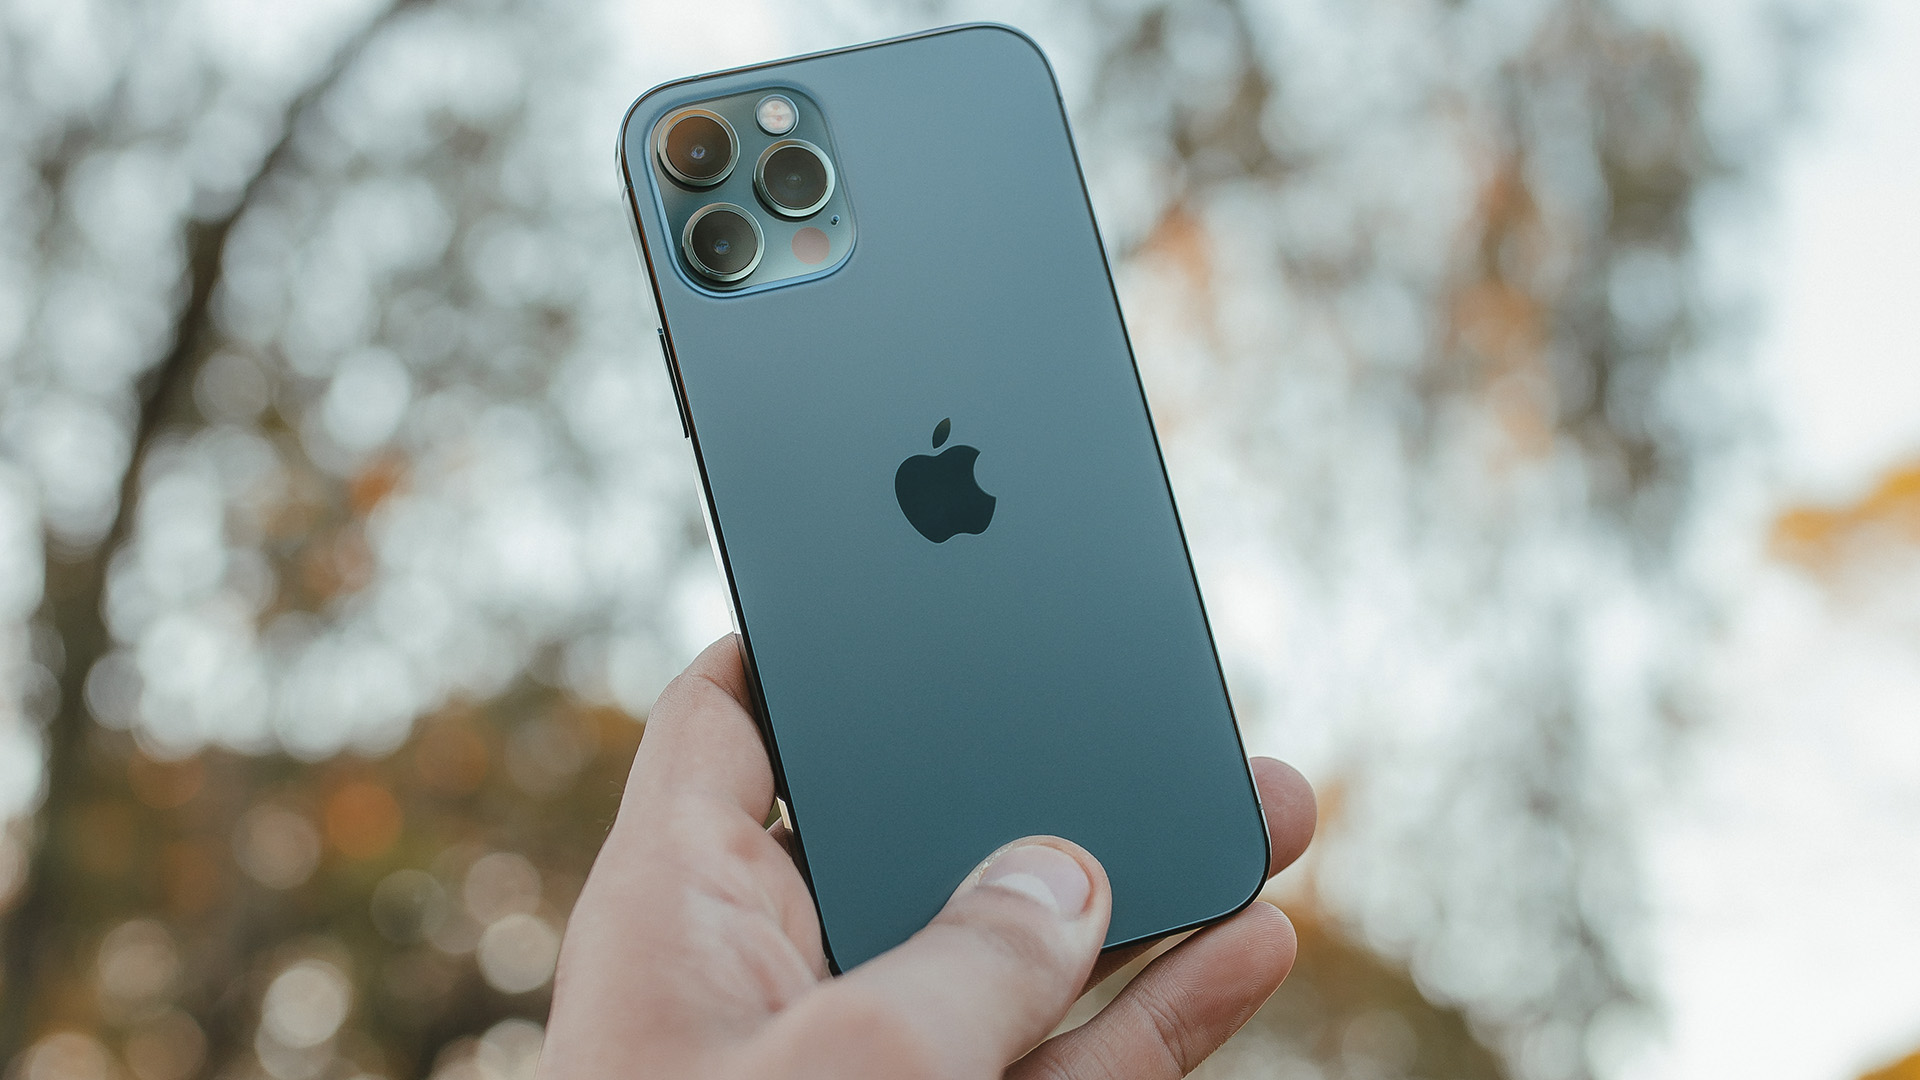 Apple's IPhone 13 To Have Improved, Larger Camera